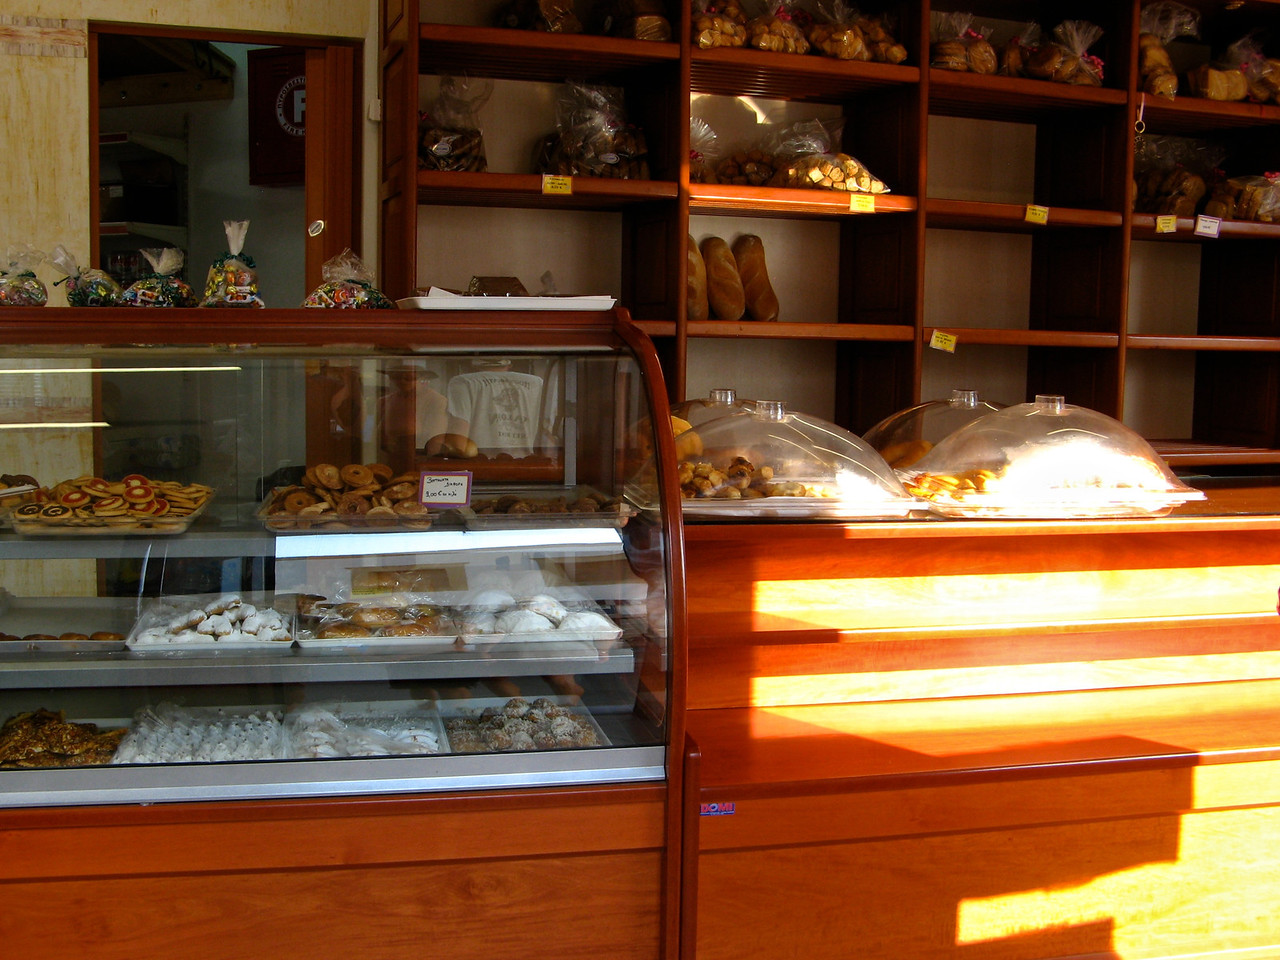 Here's a look inside a small bakery in town.